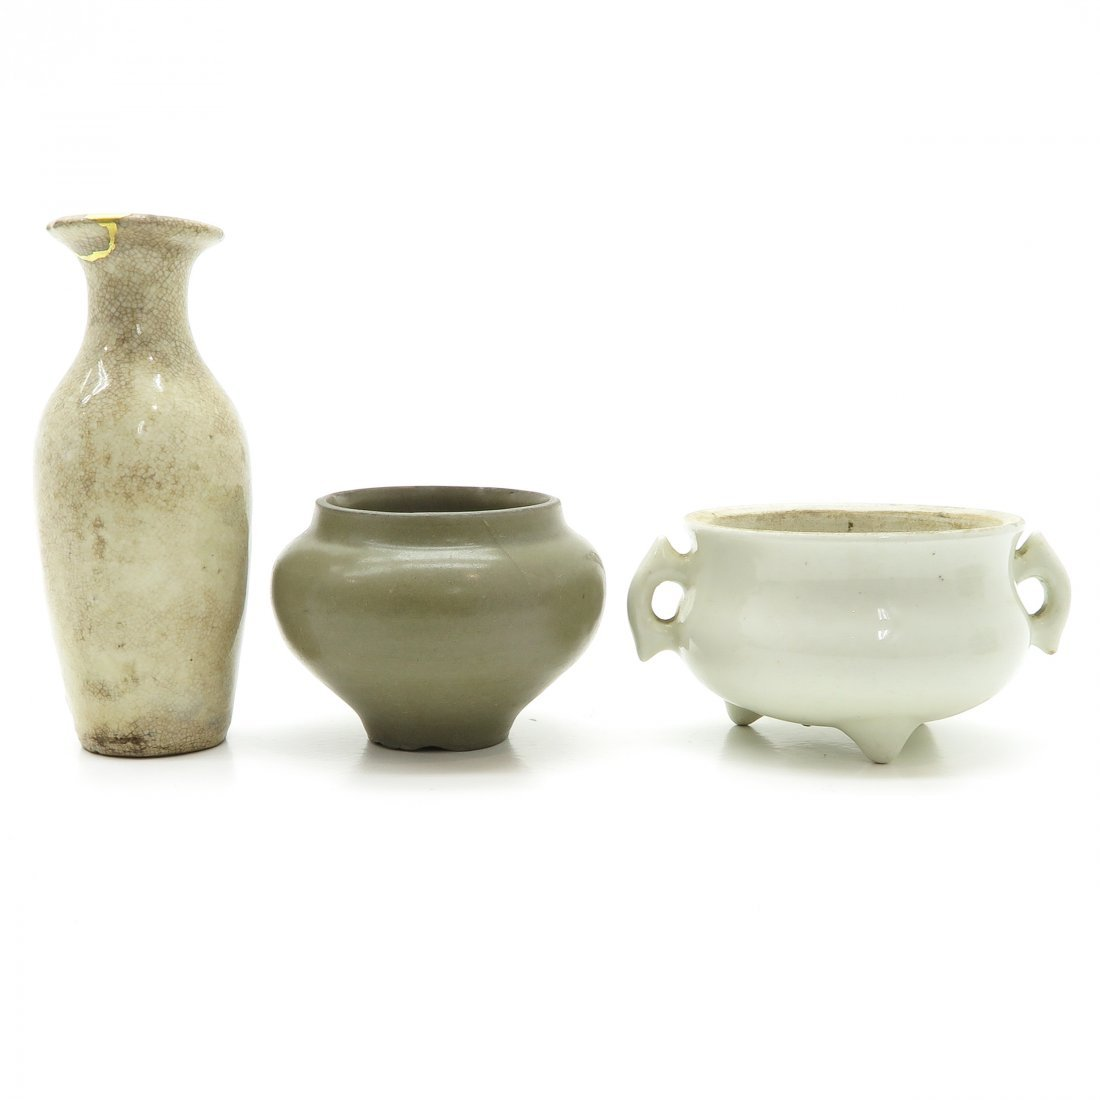 China Porcelain Vase with Small Bowl and Censer